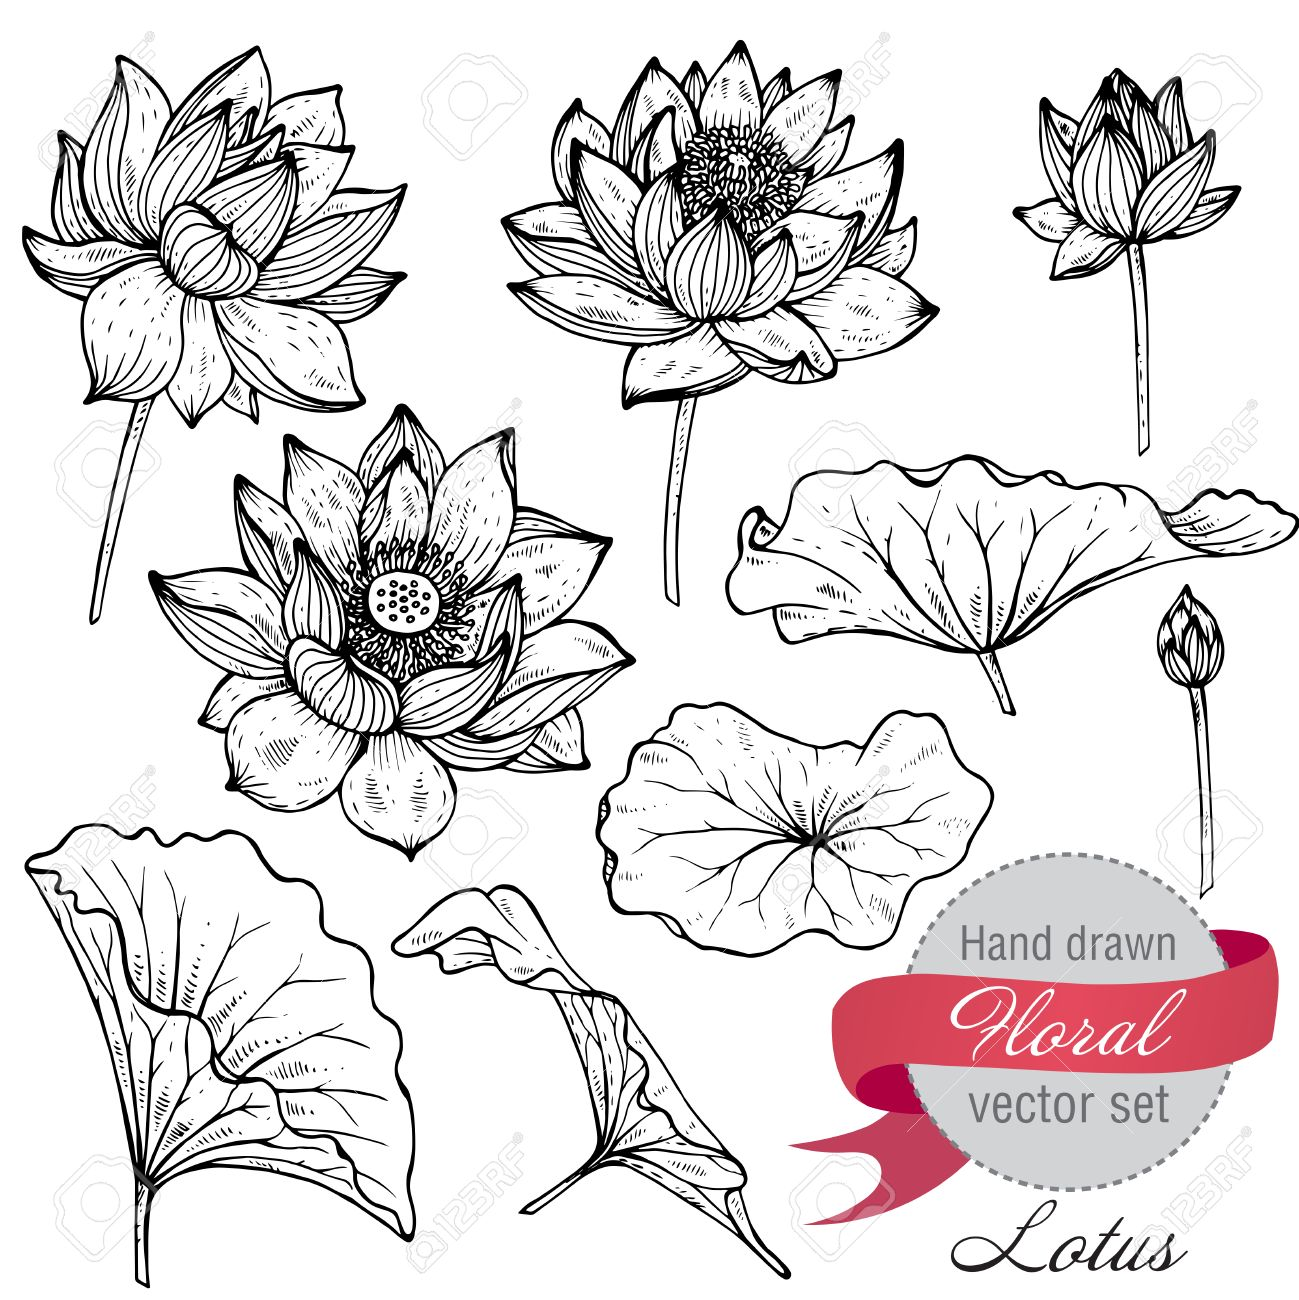 Vector Set Of Hand Drawn Lotus Flowers And Leaves Sketch Floral